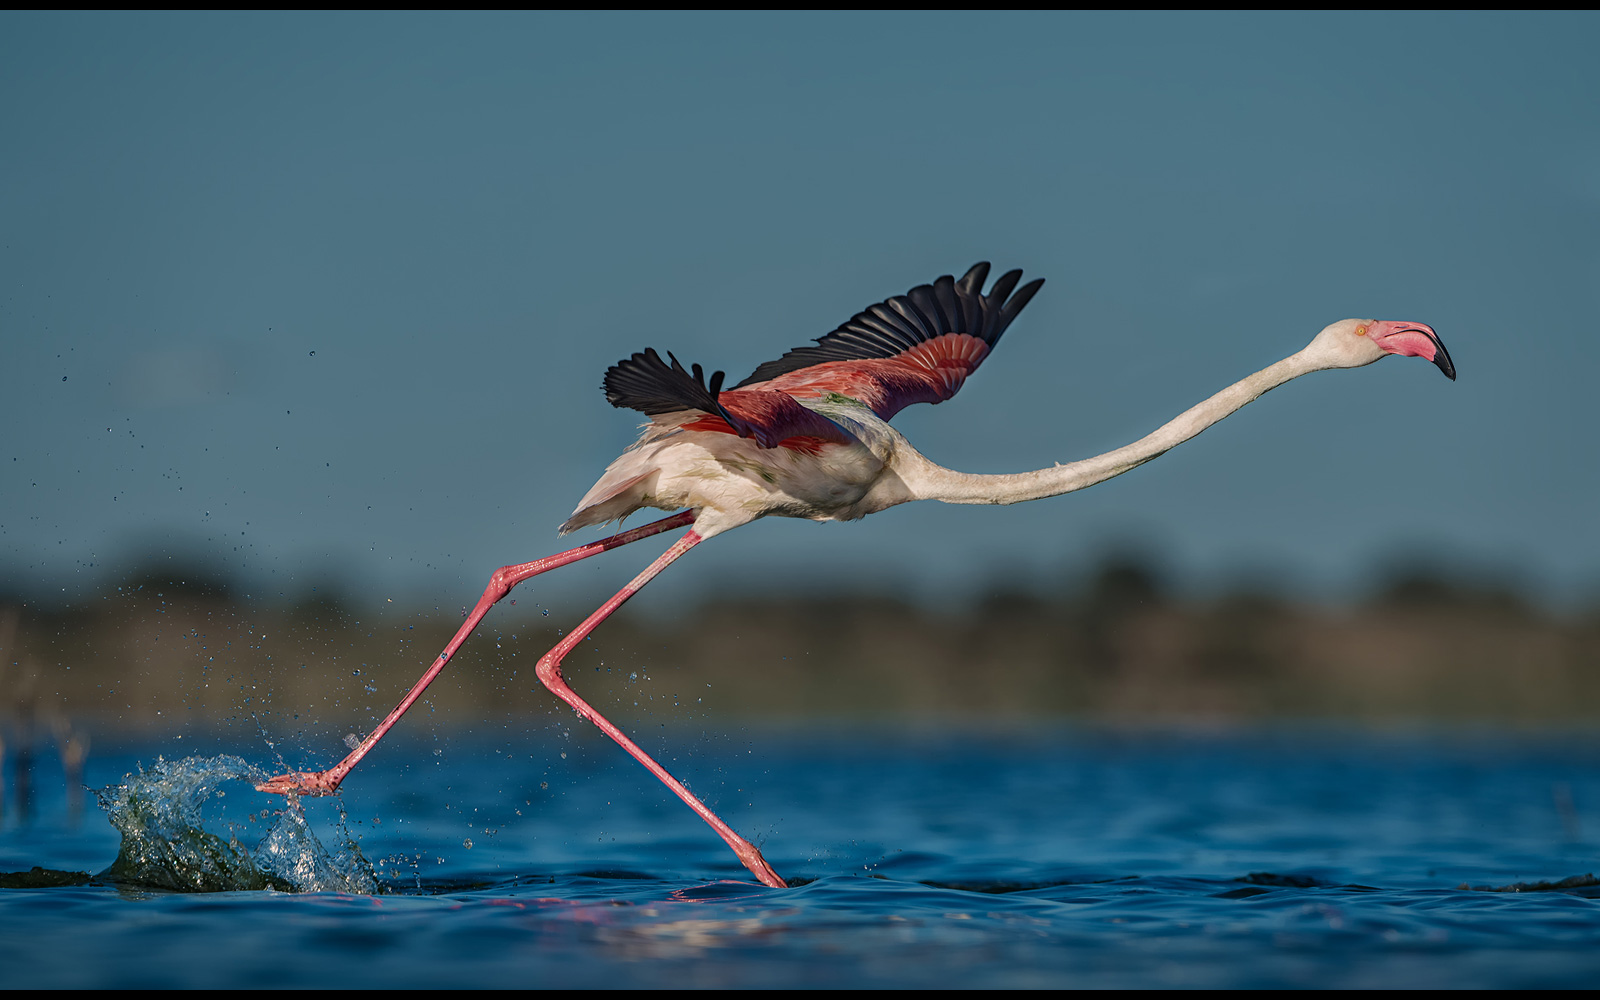 A flamingo takes off from a lake in Welkom, South Africa © Willem Kruger